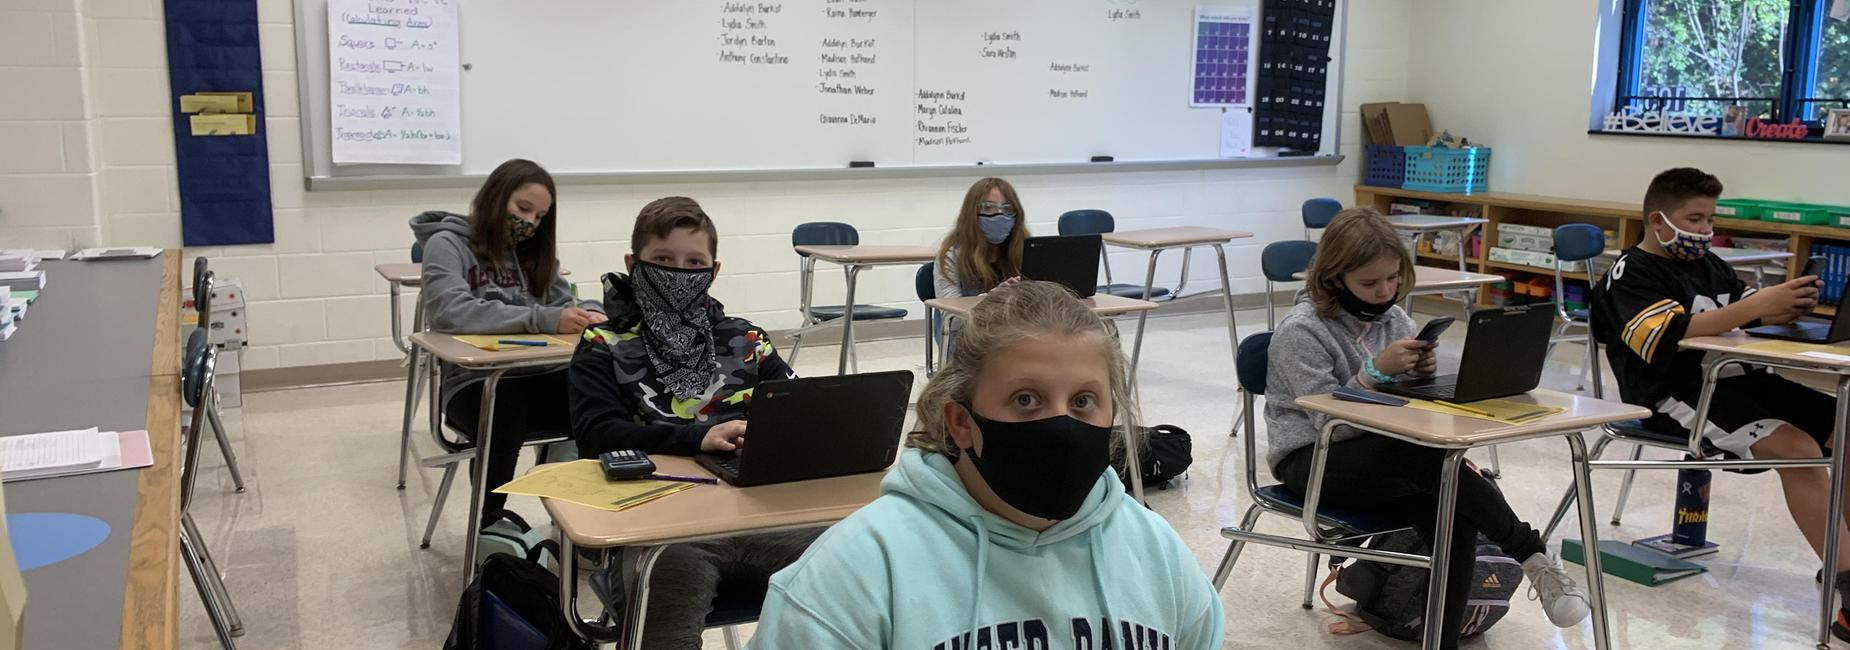 Sixth grade students in math class